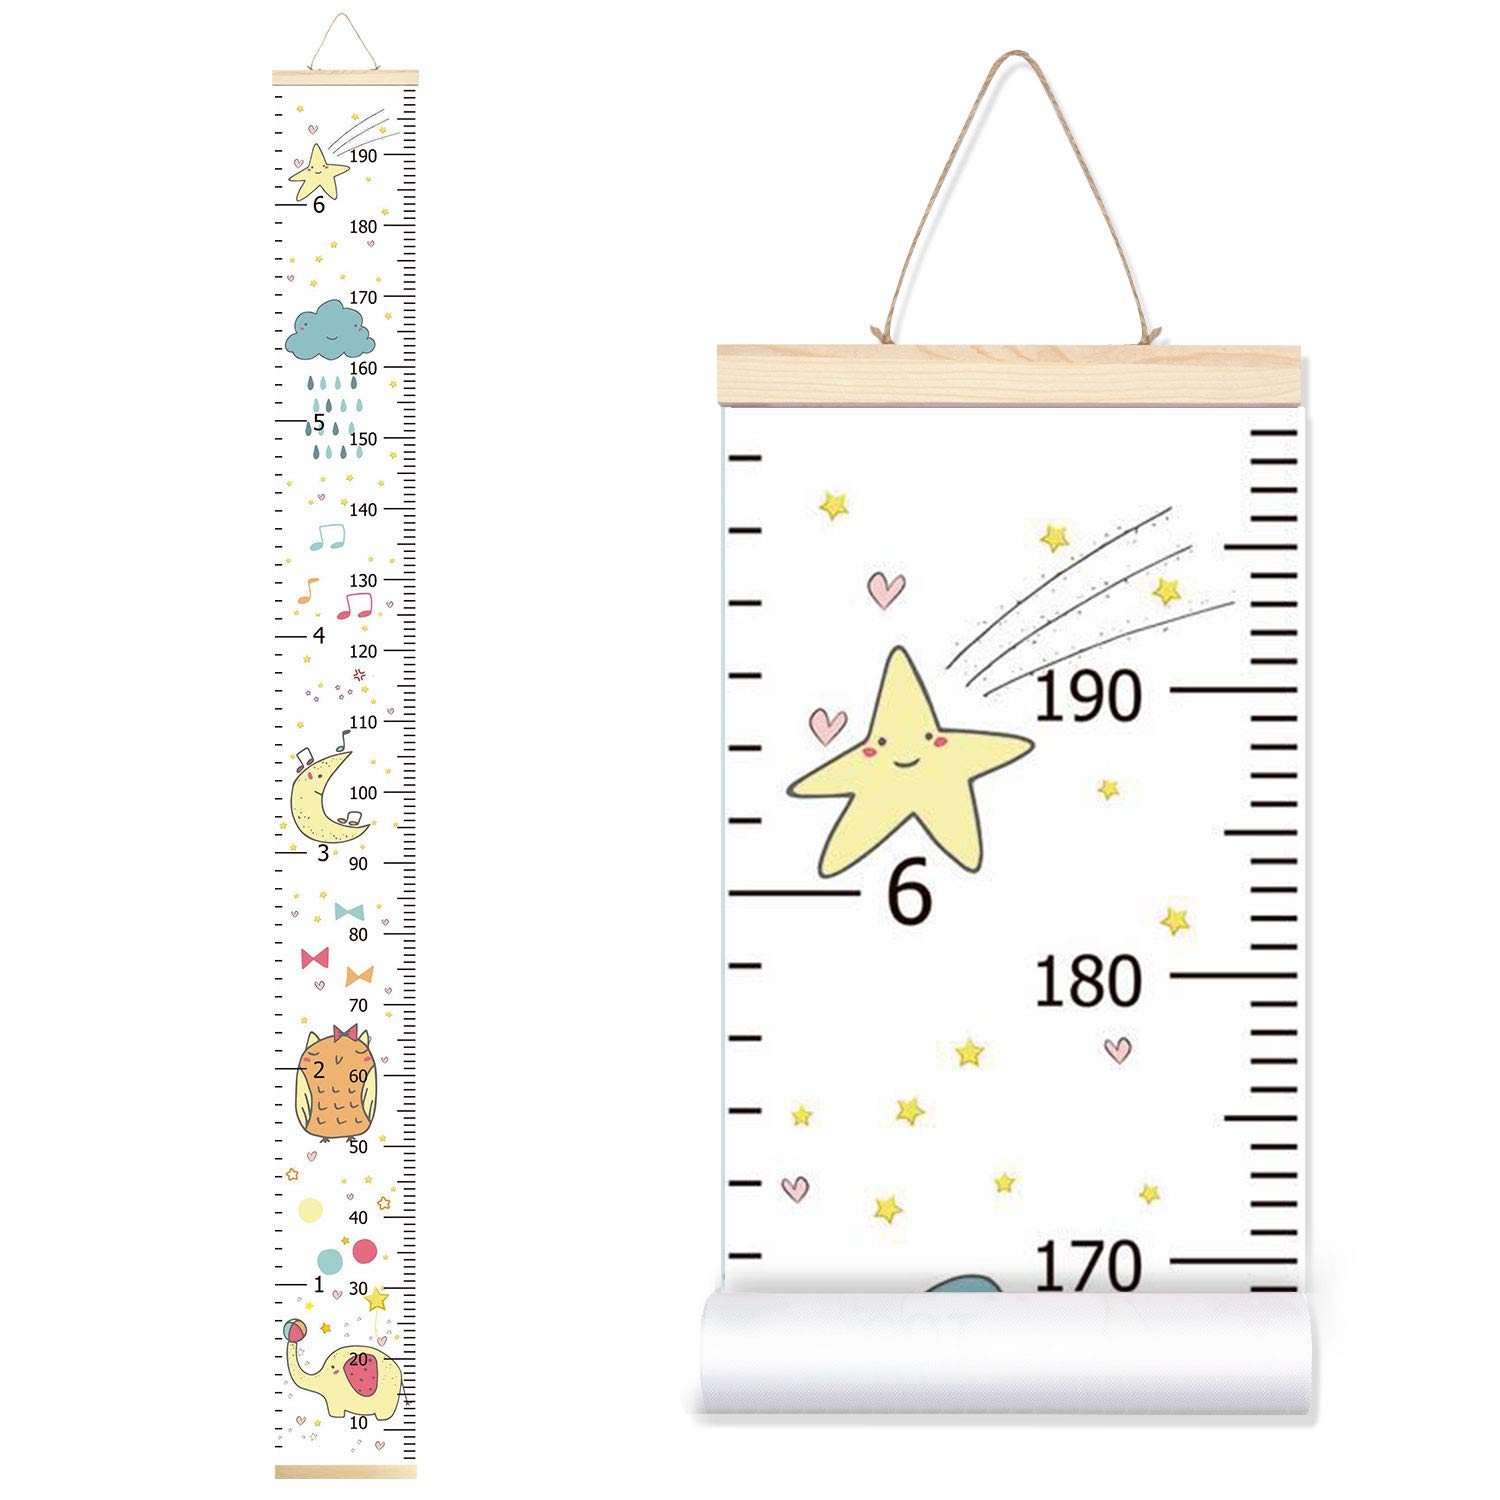 Rainbow+Flower Sylfairy Growth Chart Rainbow Flower Canvas Height Chart Kids Roll-up Wall Ruler Removable Wall Hanging Measurement Chart 7.9 x 79 Wall Decoration with Wood Frame